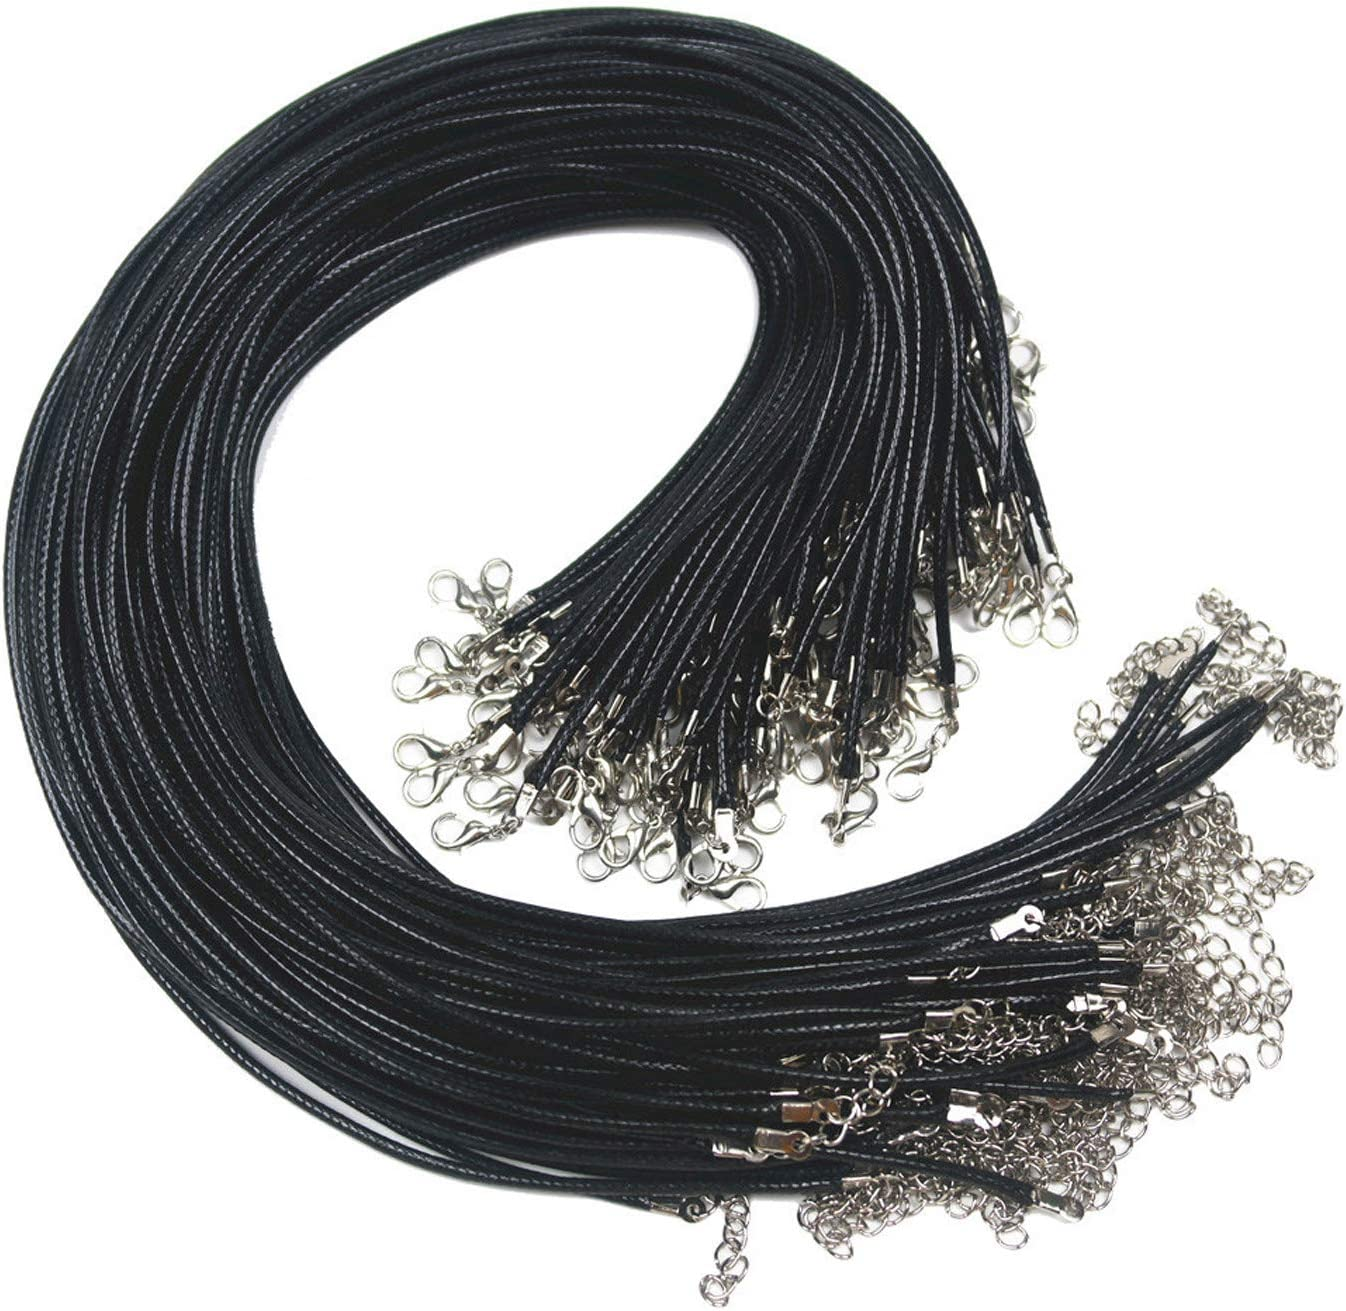 BLACK 2MM NECKLACE WAXED CORD STRING WITH LOBSTER CLASP 18 INCHES